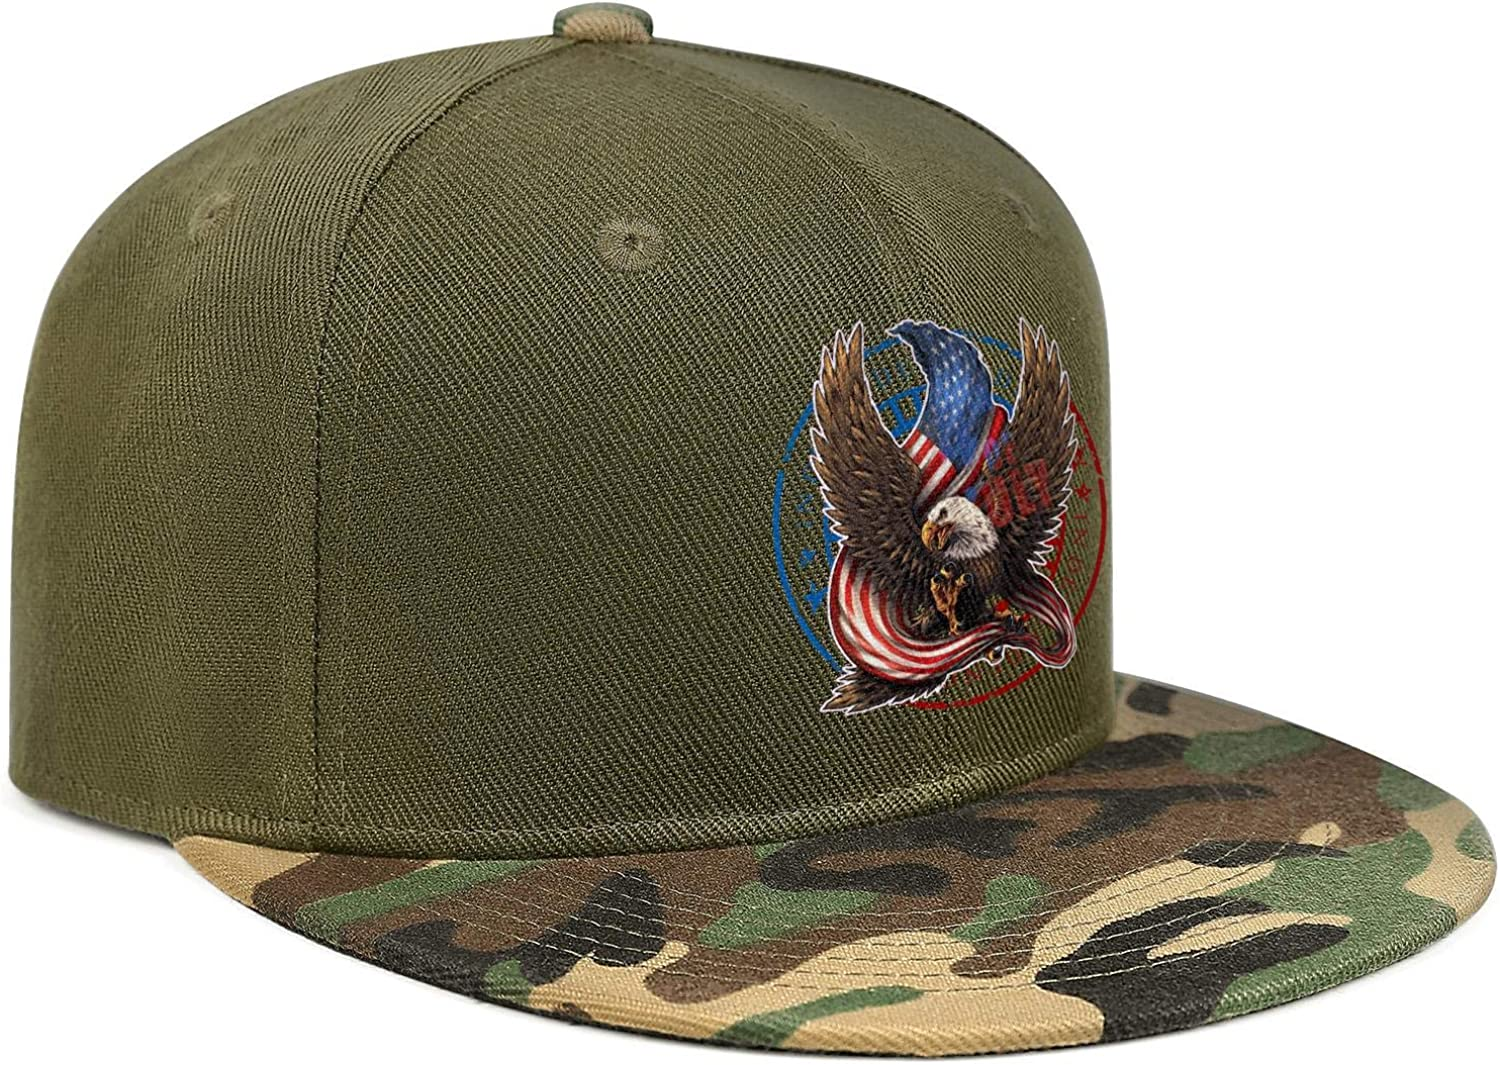 Unique 4th of July Eagle USA Flag Unisex Baseball Cap Outdoor Snapback Caps Adjustable Trucker Caps Dad-Hat